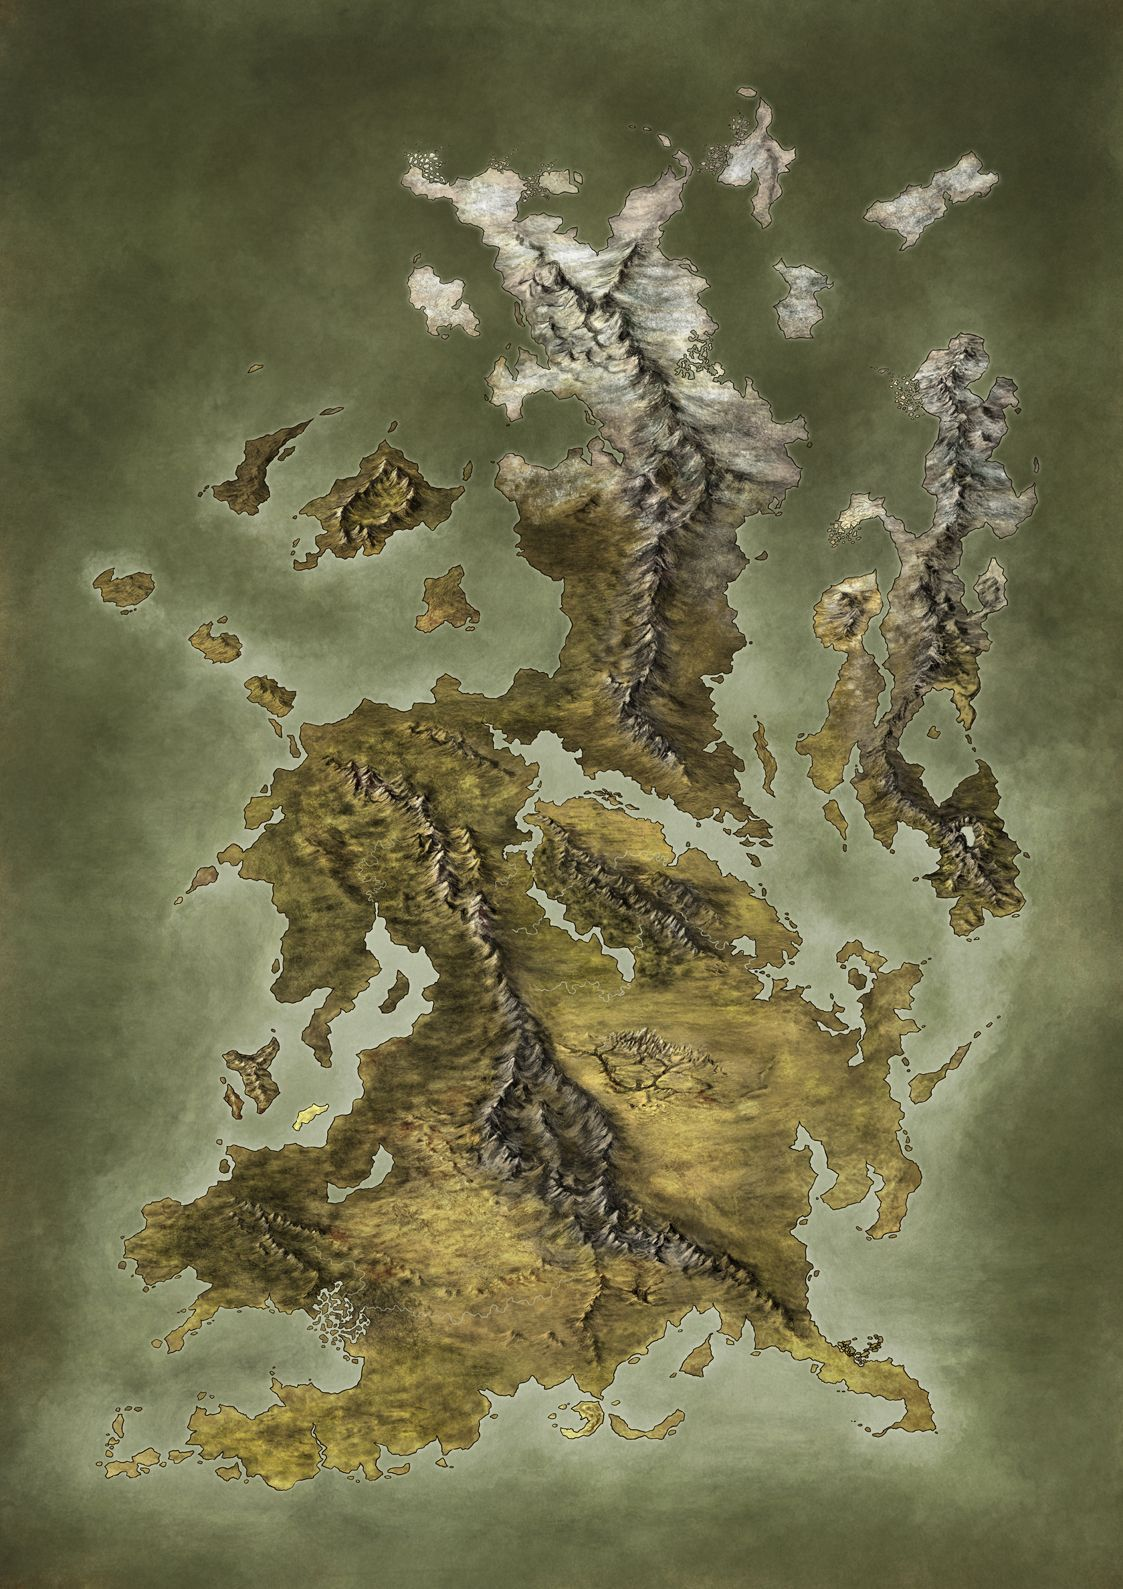 Handpainted Fantasy Map Concept By Djekspek Deviantart Com On